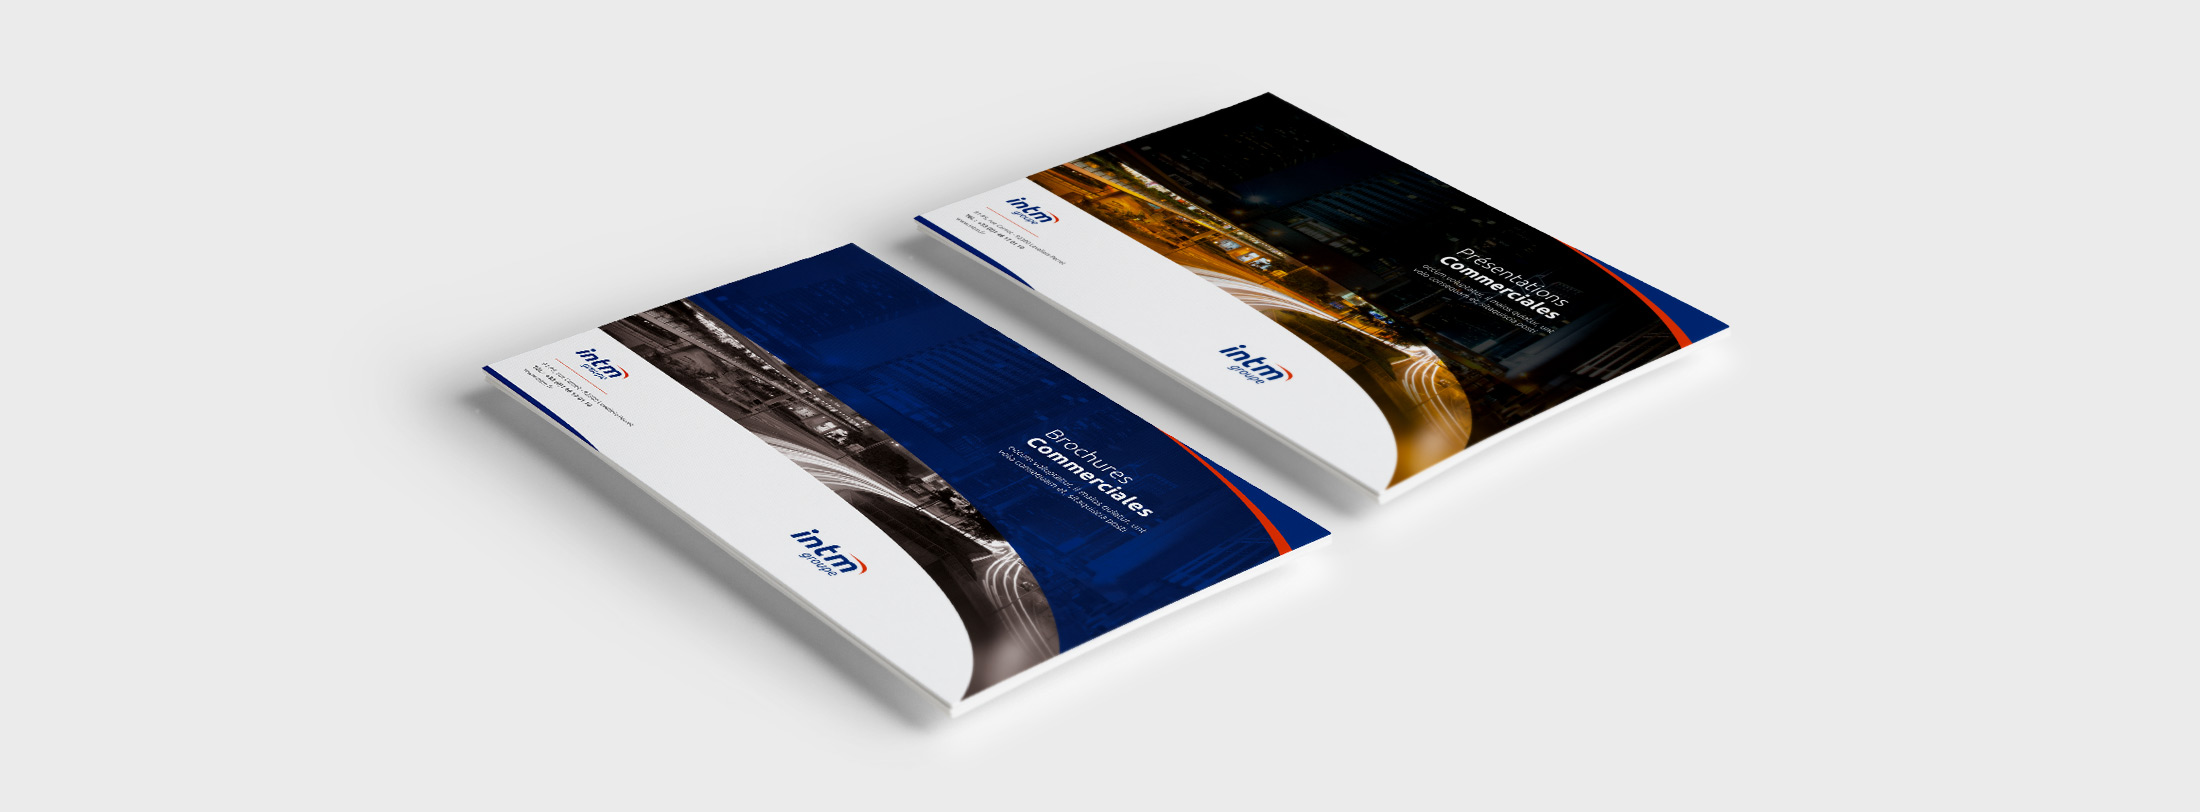 INTM-osb-communication-identite-branding-couverture